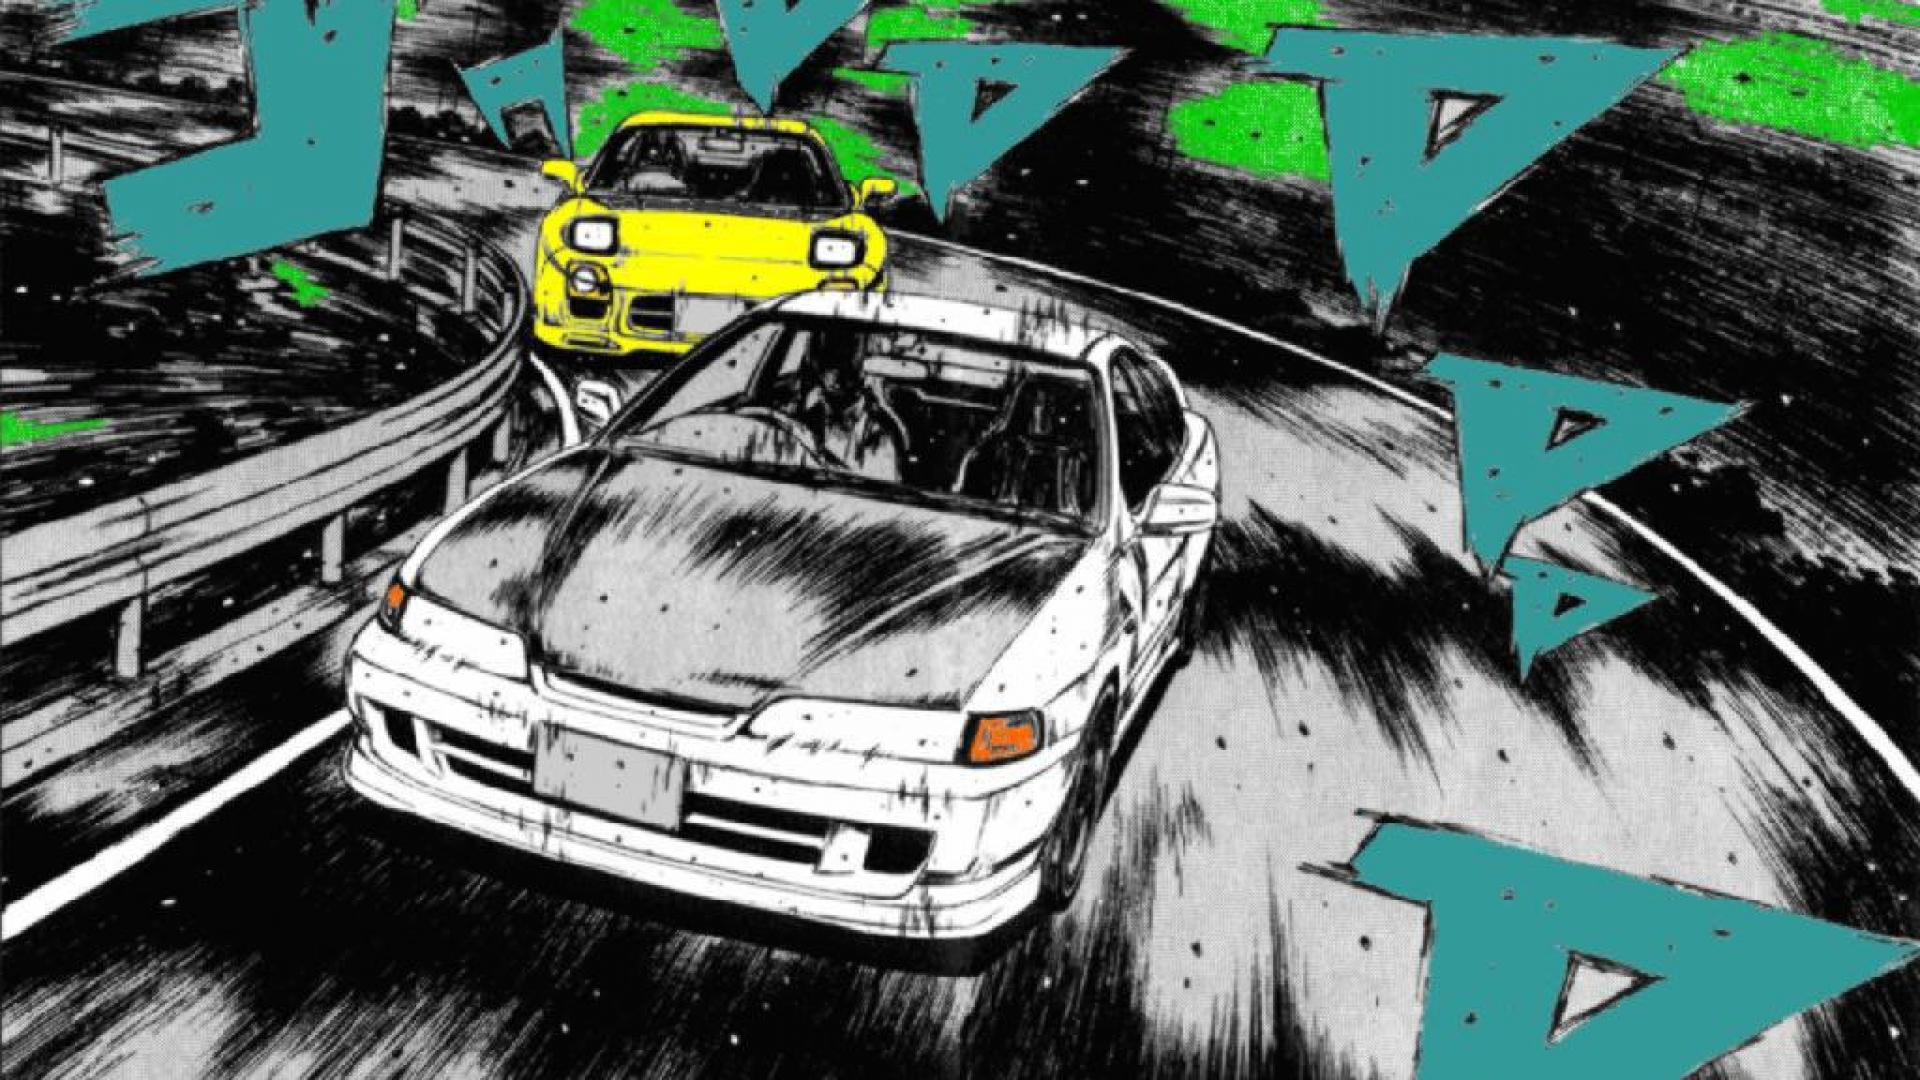 Initial d wallpaper hd wallpapersafari - Ae86 initial d wallpaper ...